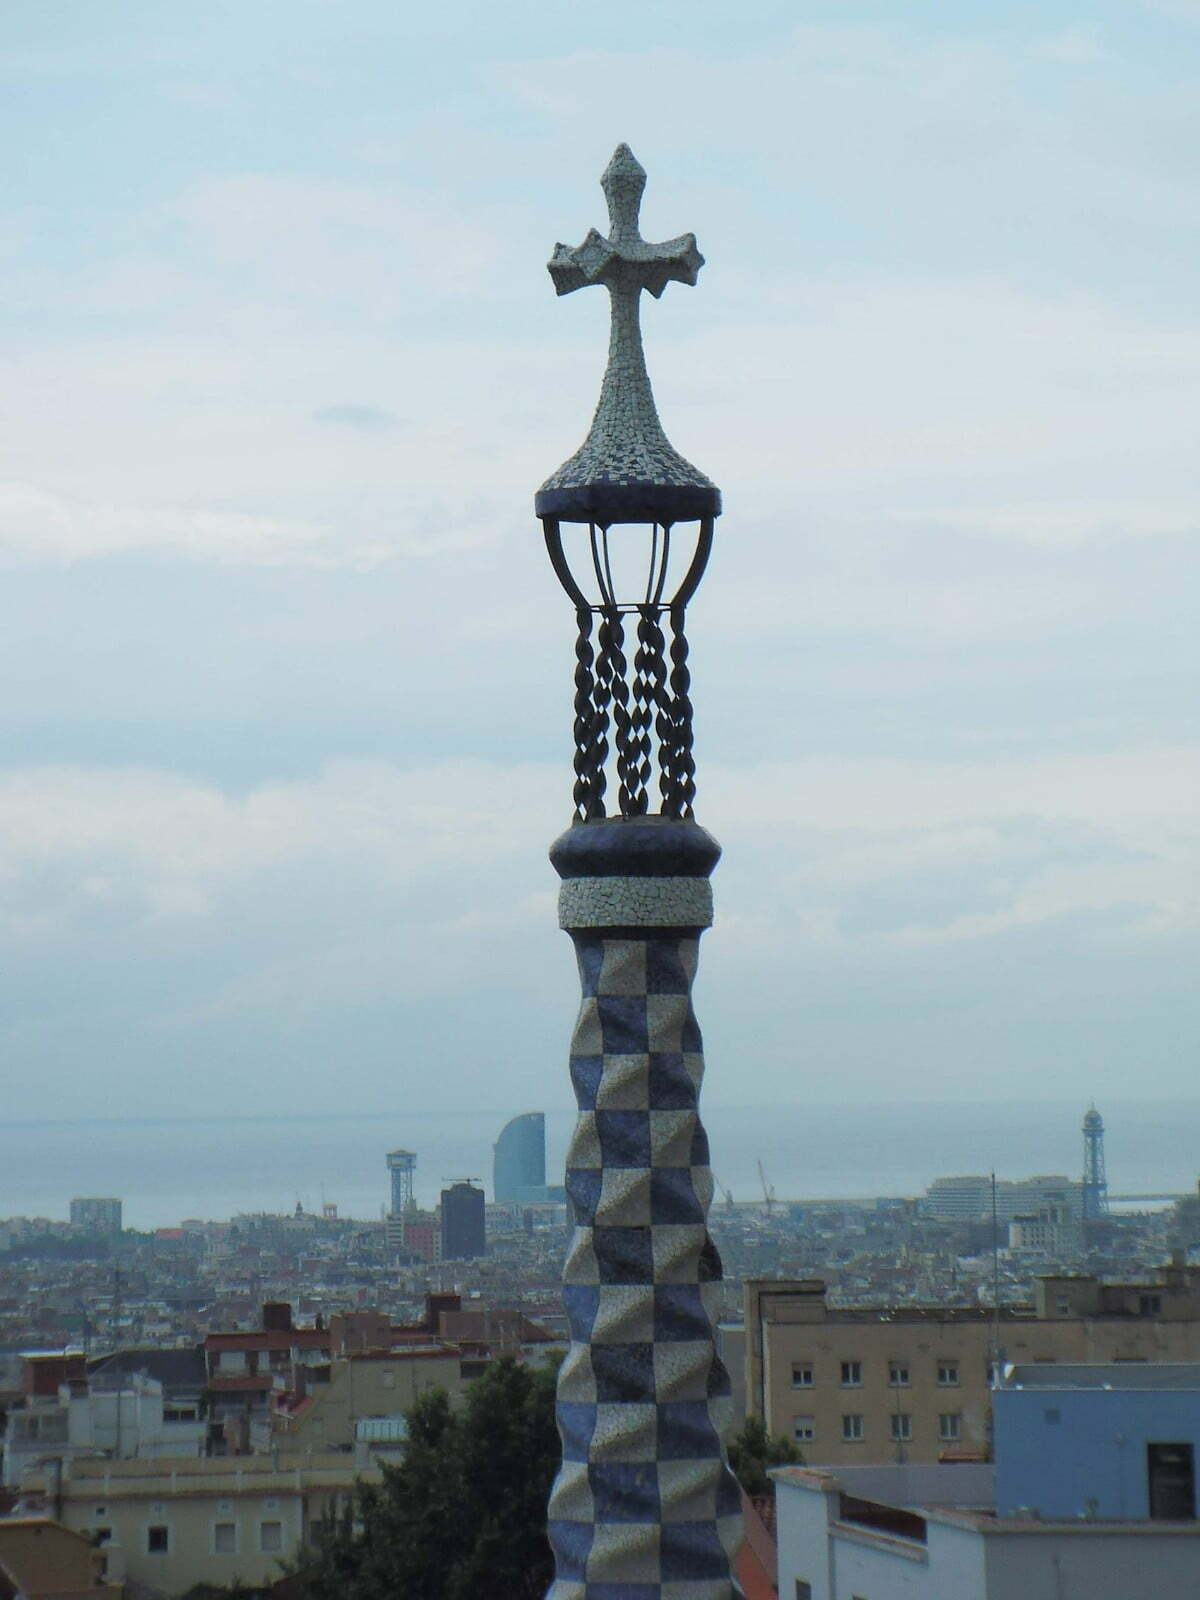 Gaudi's Gingerbread House in Parc Guell Looks Delicious 3